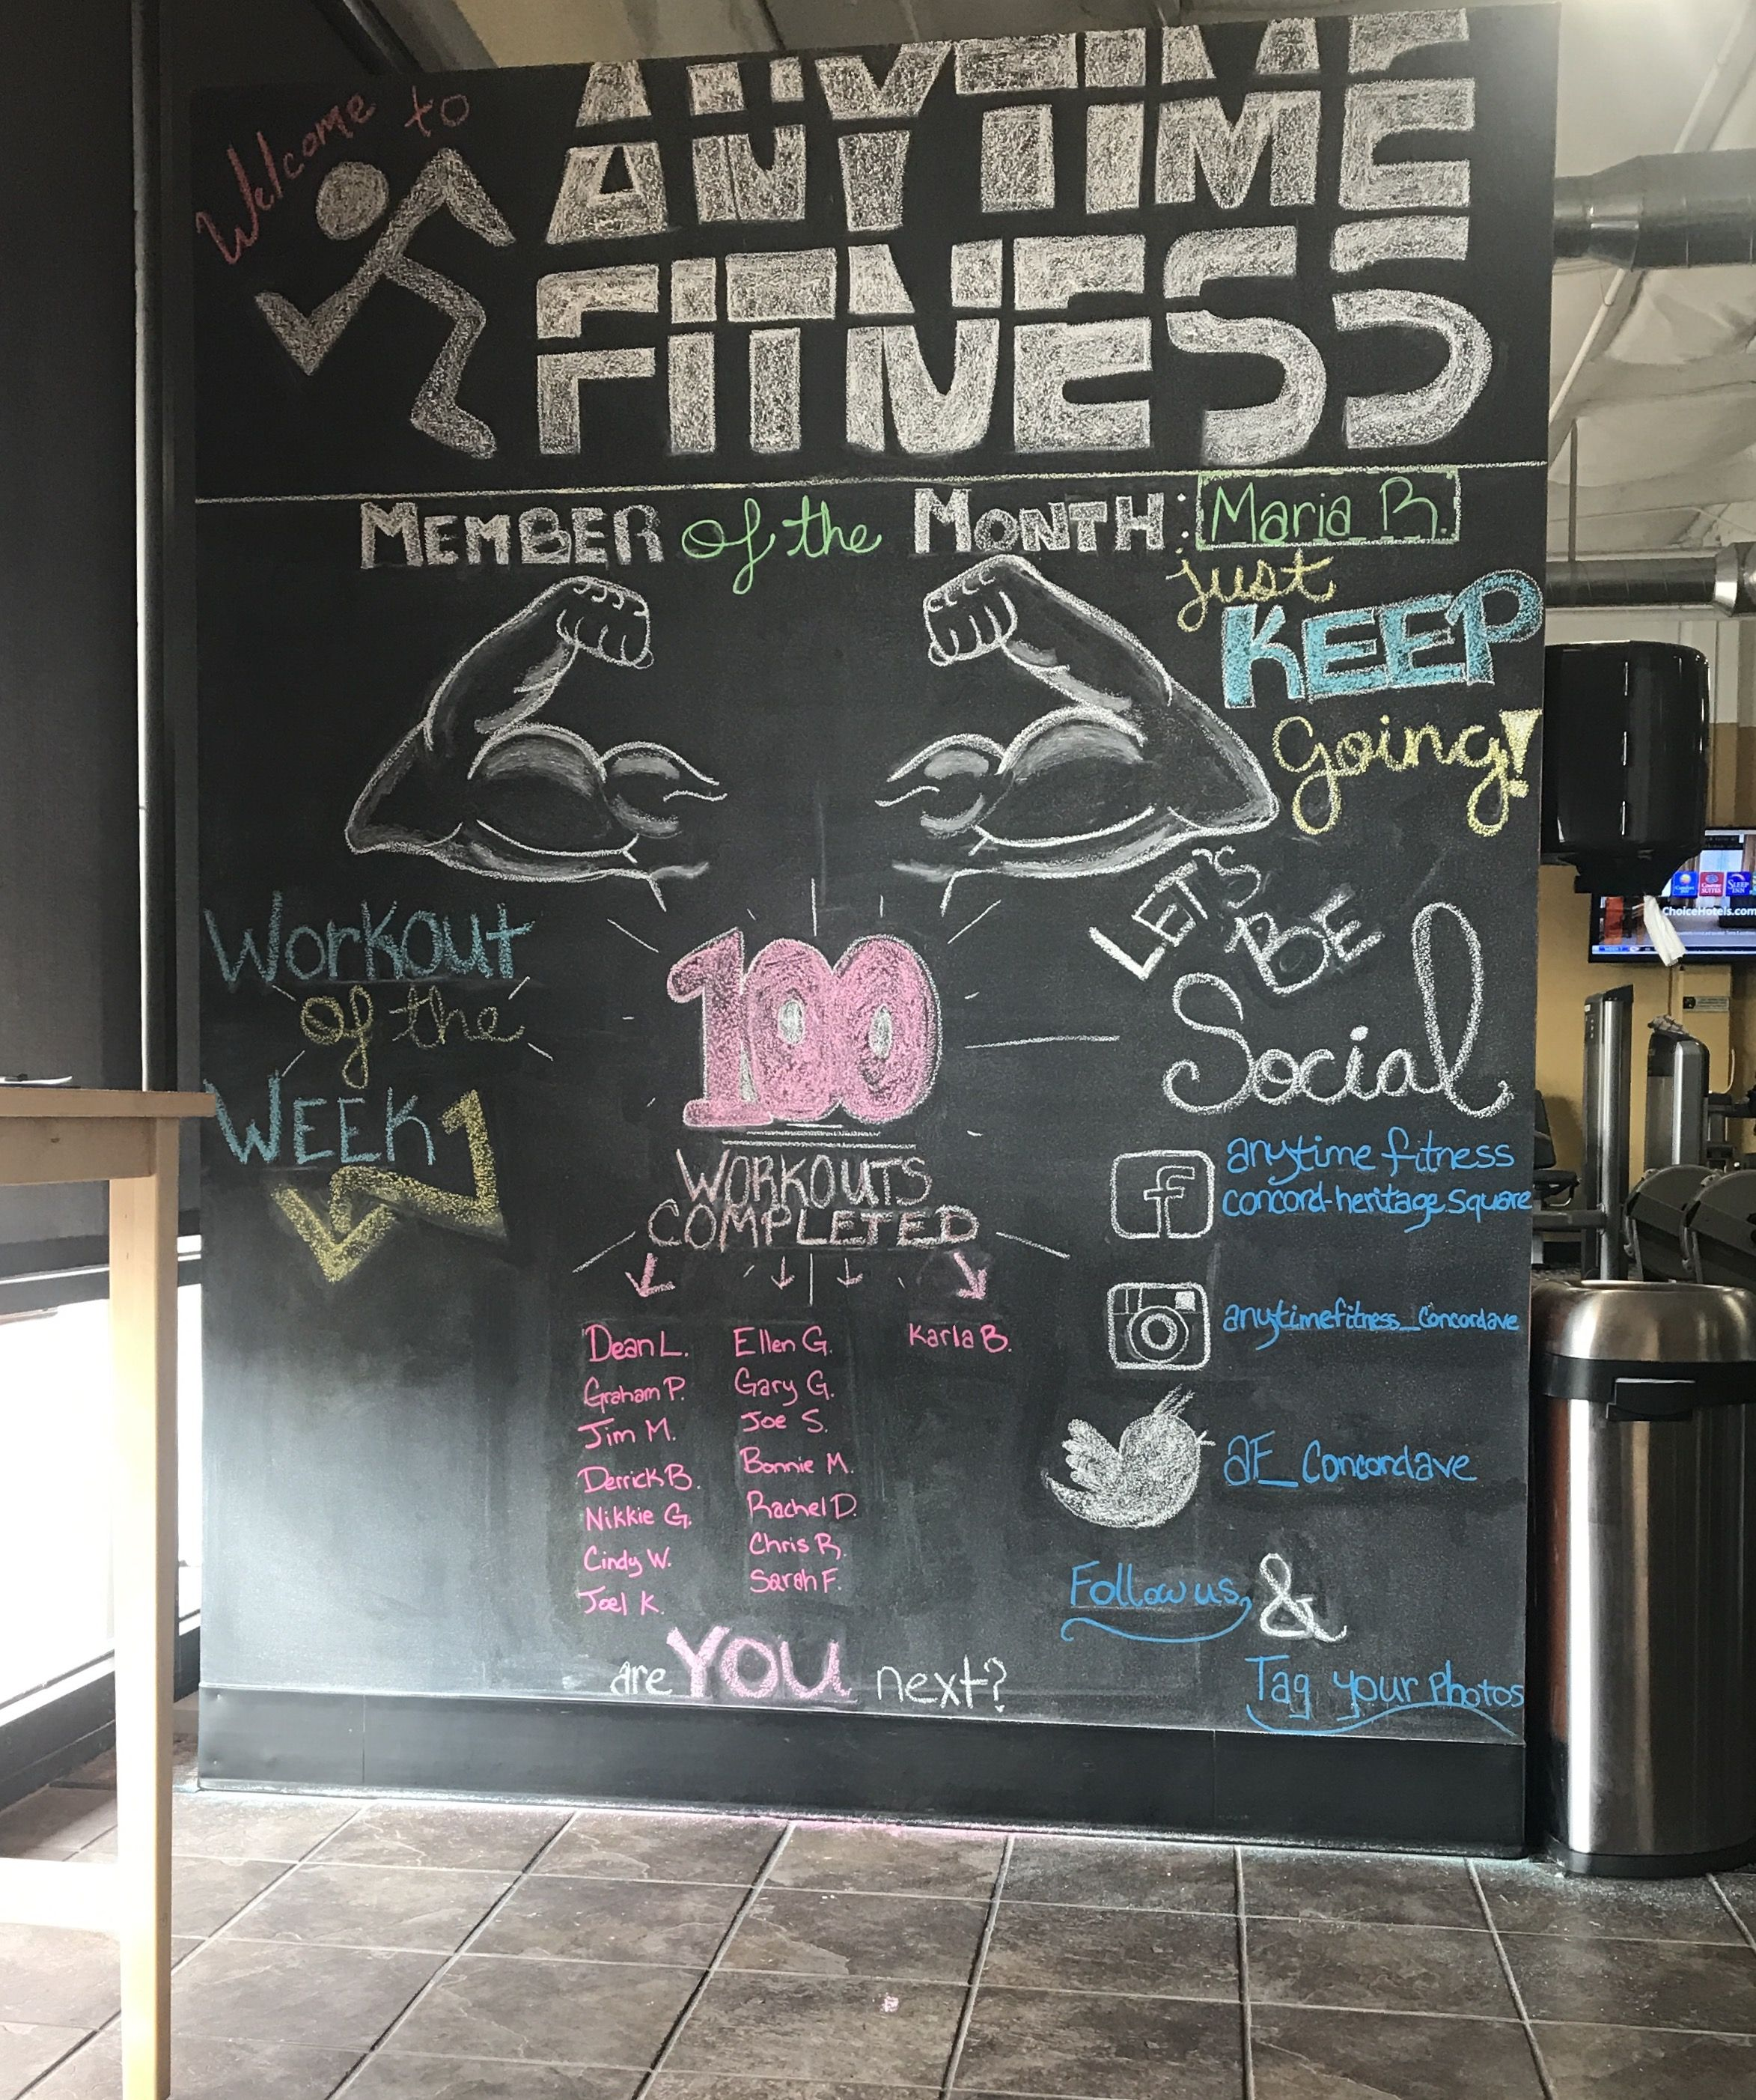 Anytime Fitness Concord Heritage Square Chalkboard Gym Art Gym Chalk Anytime Fitness Gym